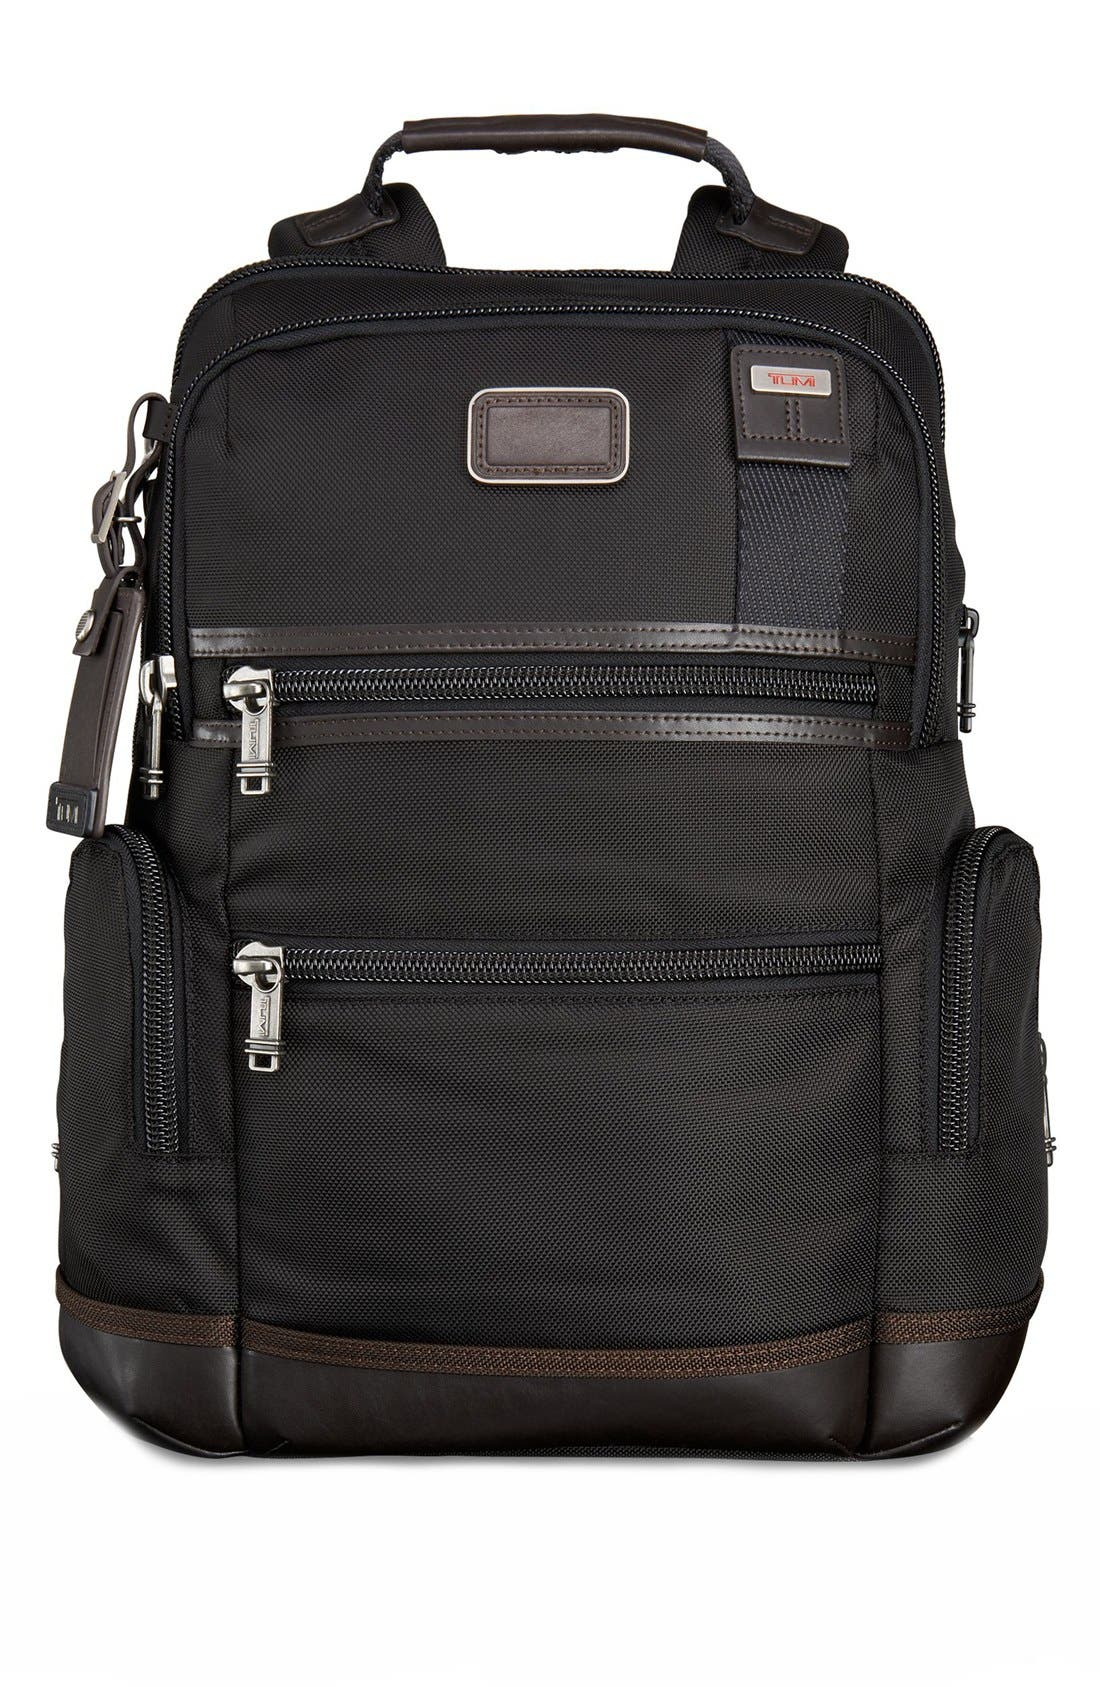 Alternate Image 1 Selected - Tumi 'Alpha Bravo - Knox' Backpack